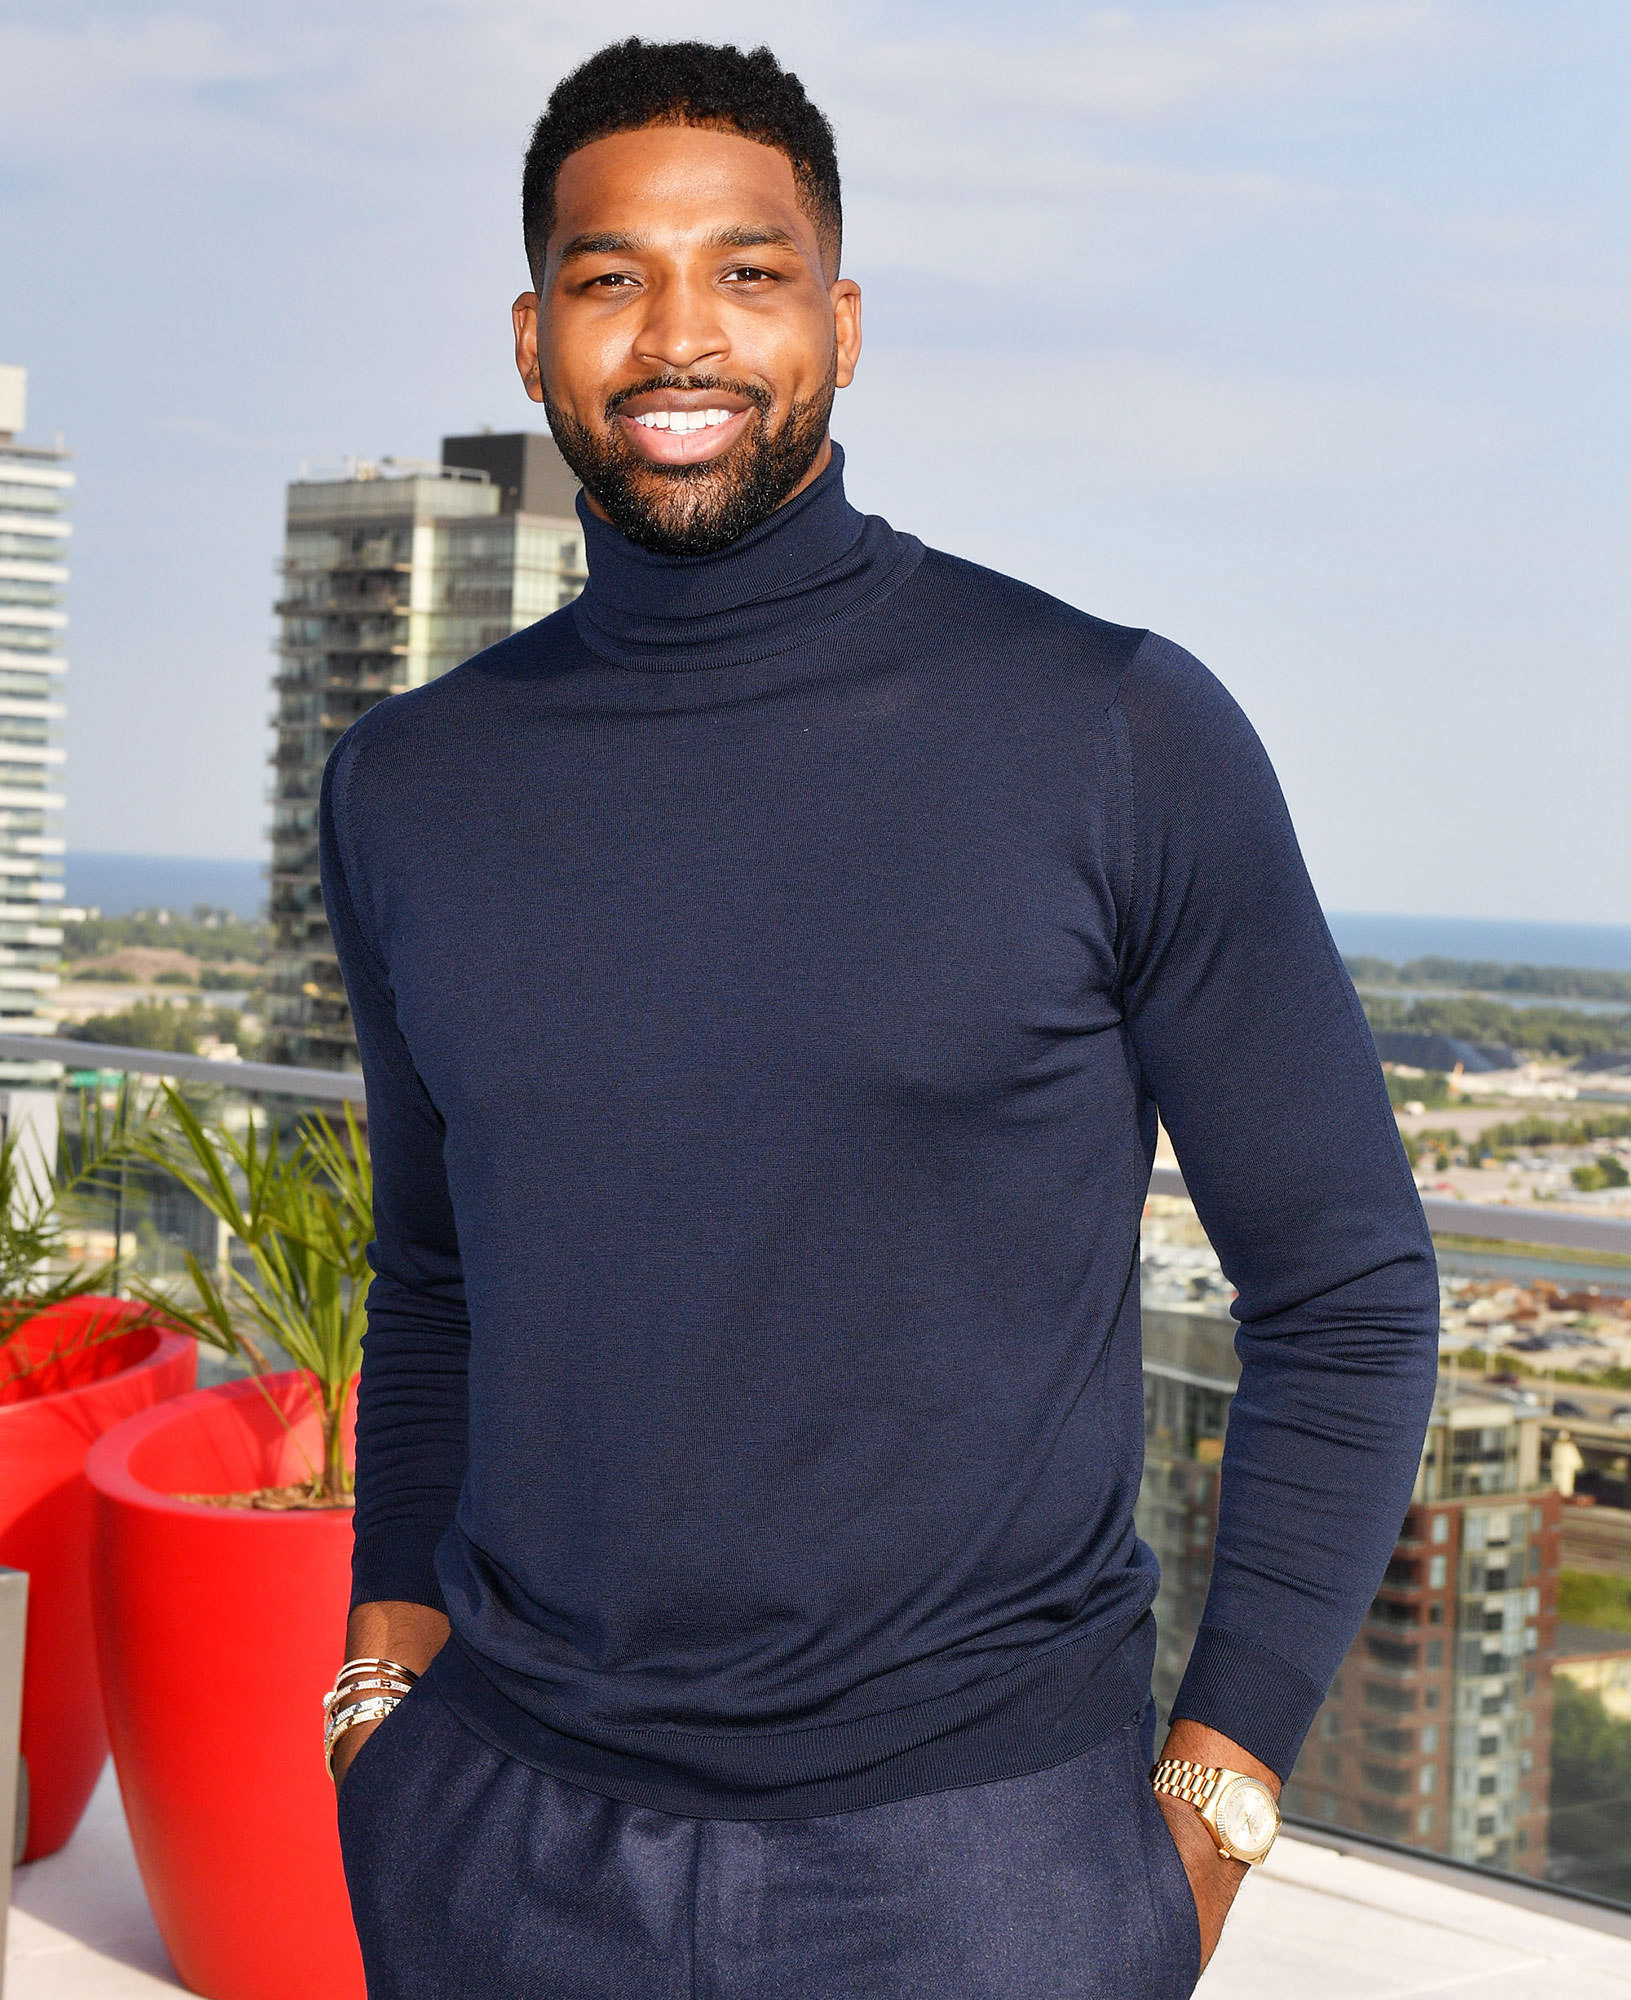 """Khloe Kardashian Jordyn Woods Tristan Thompson Cheating Scandal Hooking Up Multiple Women - Two months after the scandal, an insider told Us that the NBA star was back to his professional athlete lifestyle. """"Tristan has been continuing to go out and has been partying with friends,"""" the insider said."""